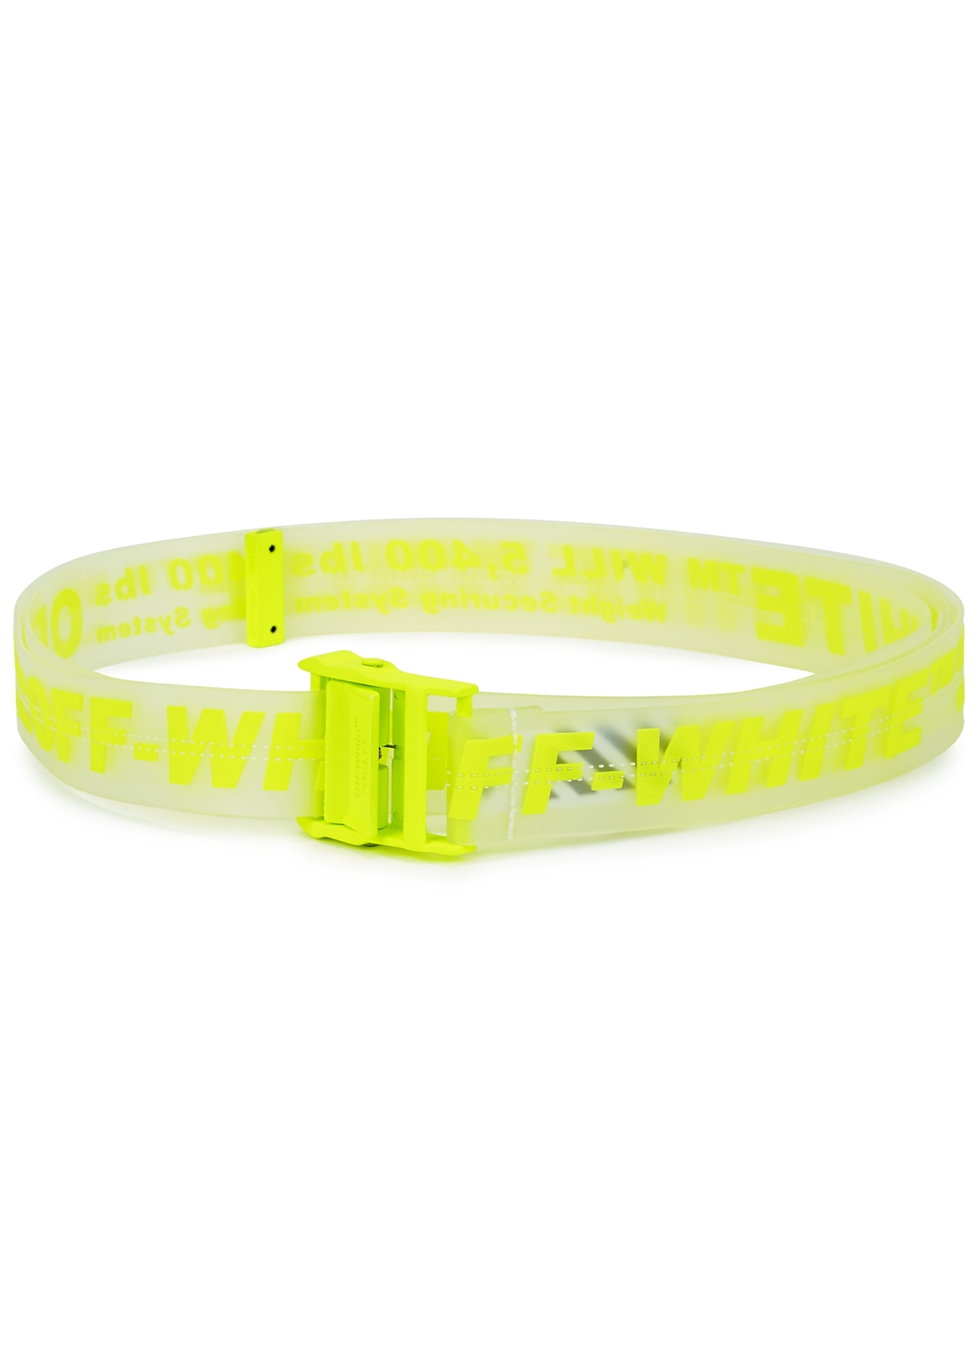 Industrial neon yellow rubberised belt - Off-White